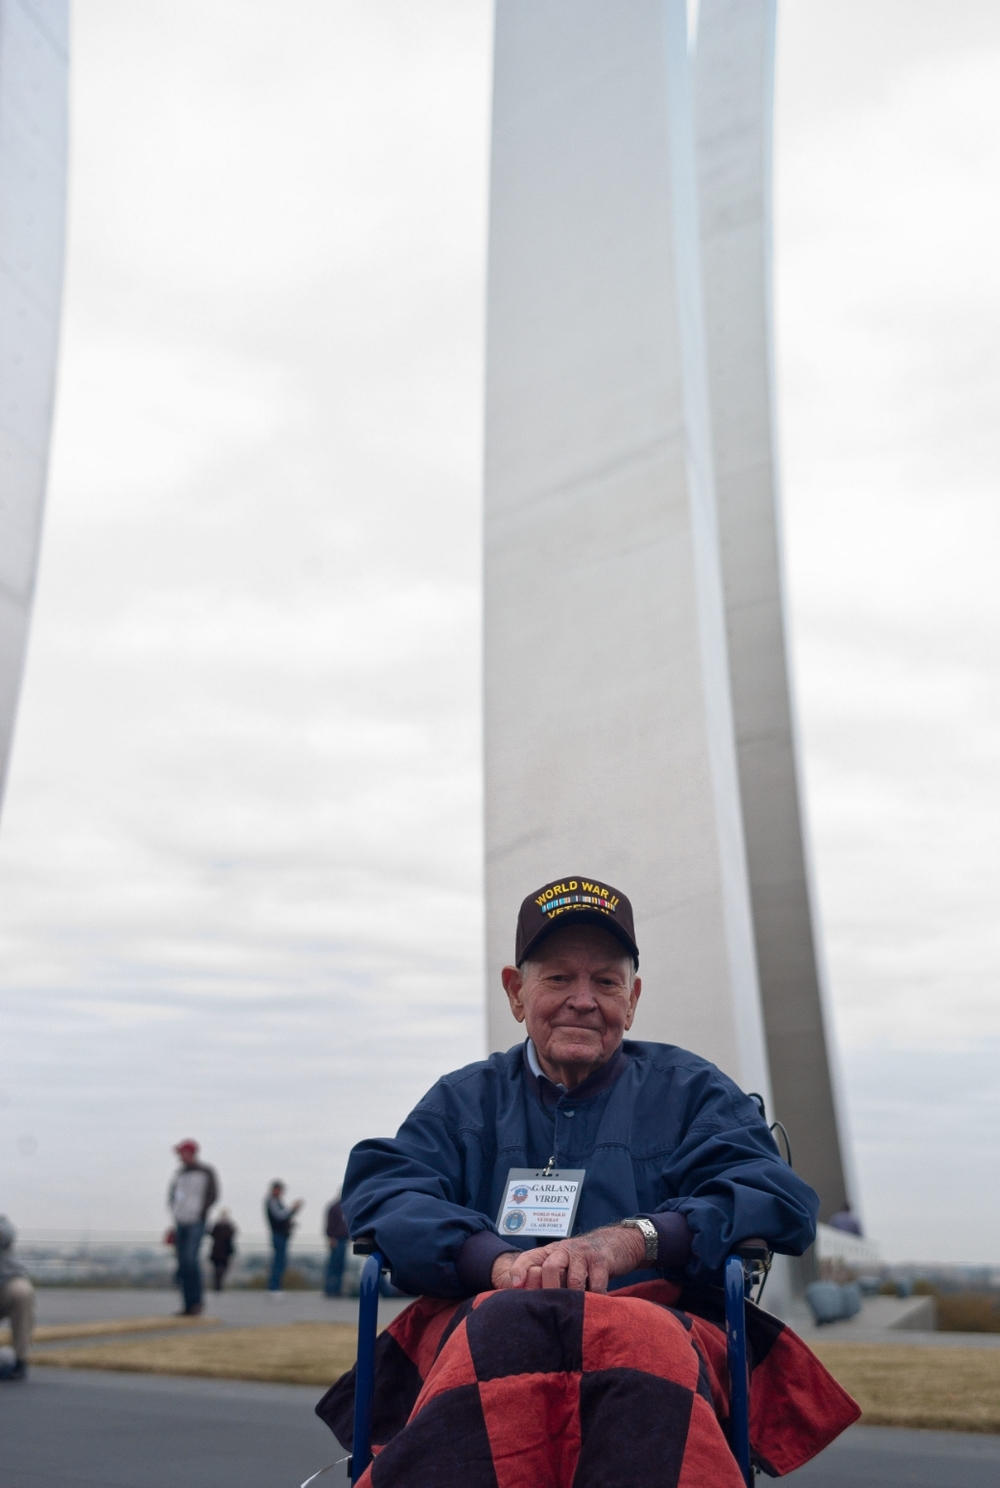 Mr. Virden at the Air Force Memorial